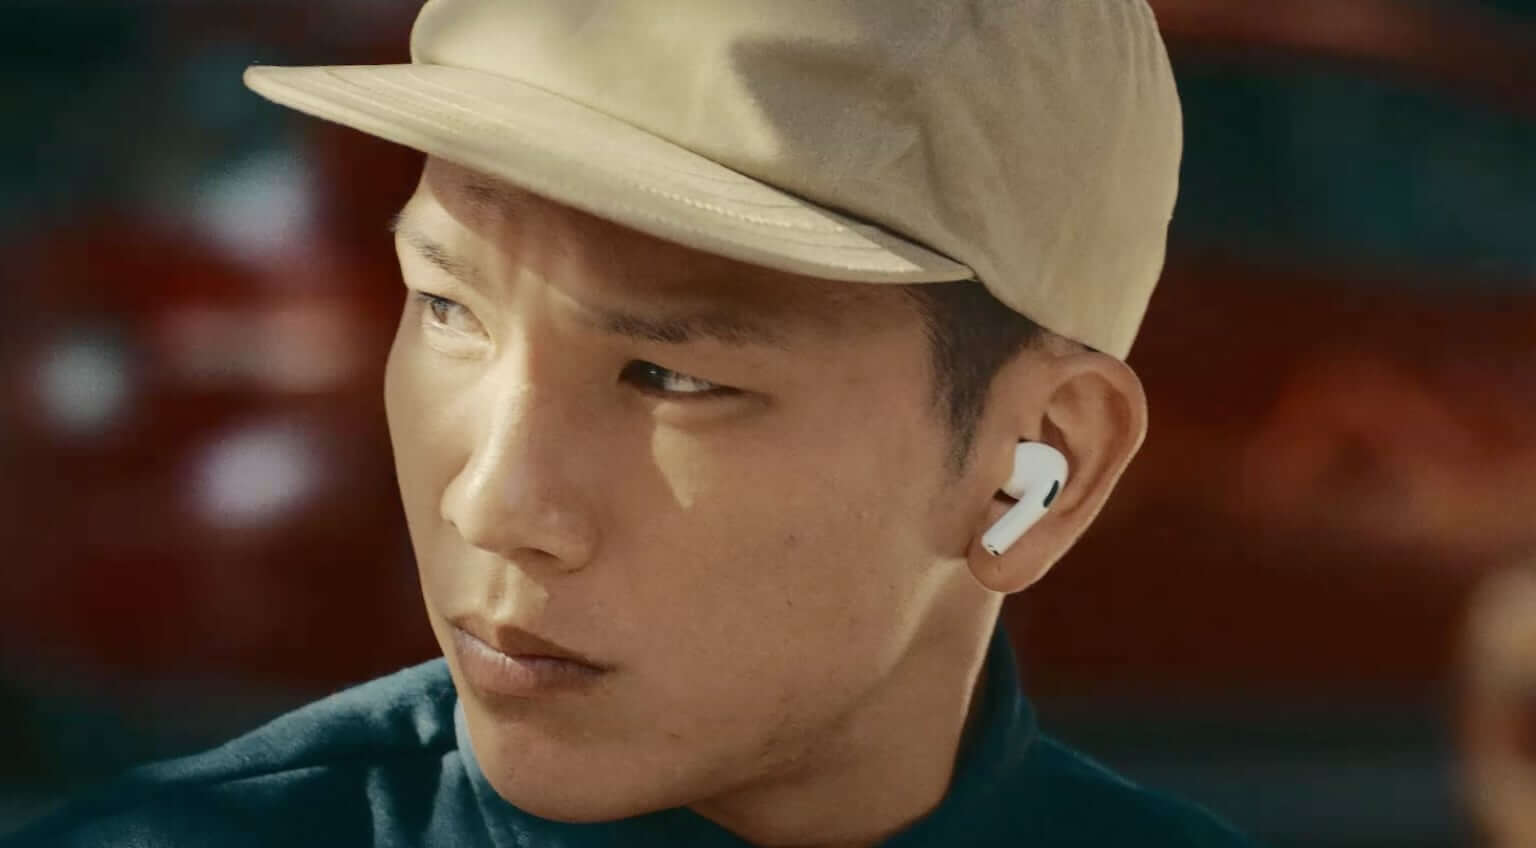 Grab the AirPods Pro While They're Marked Down